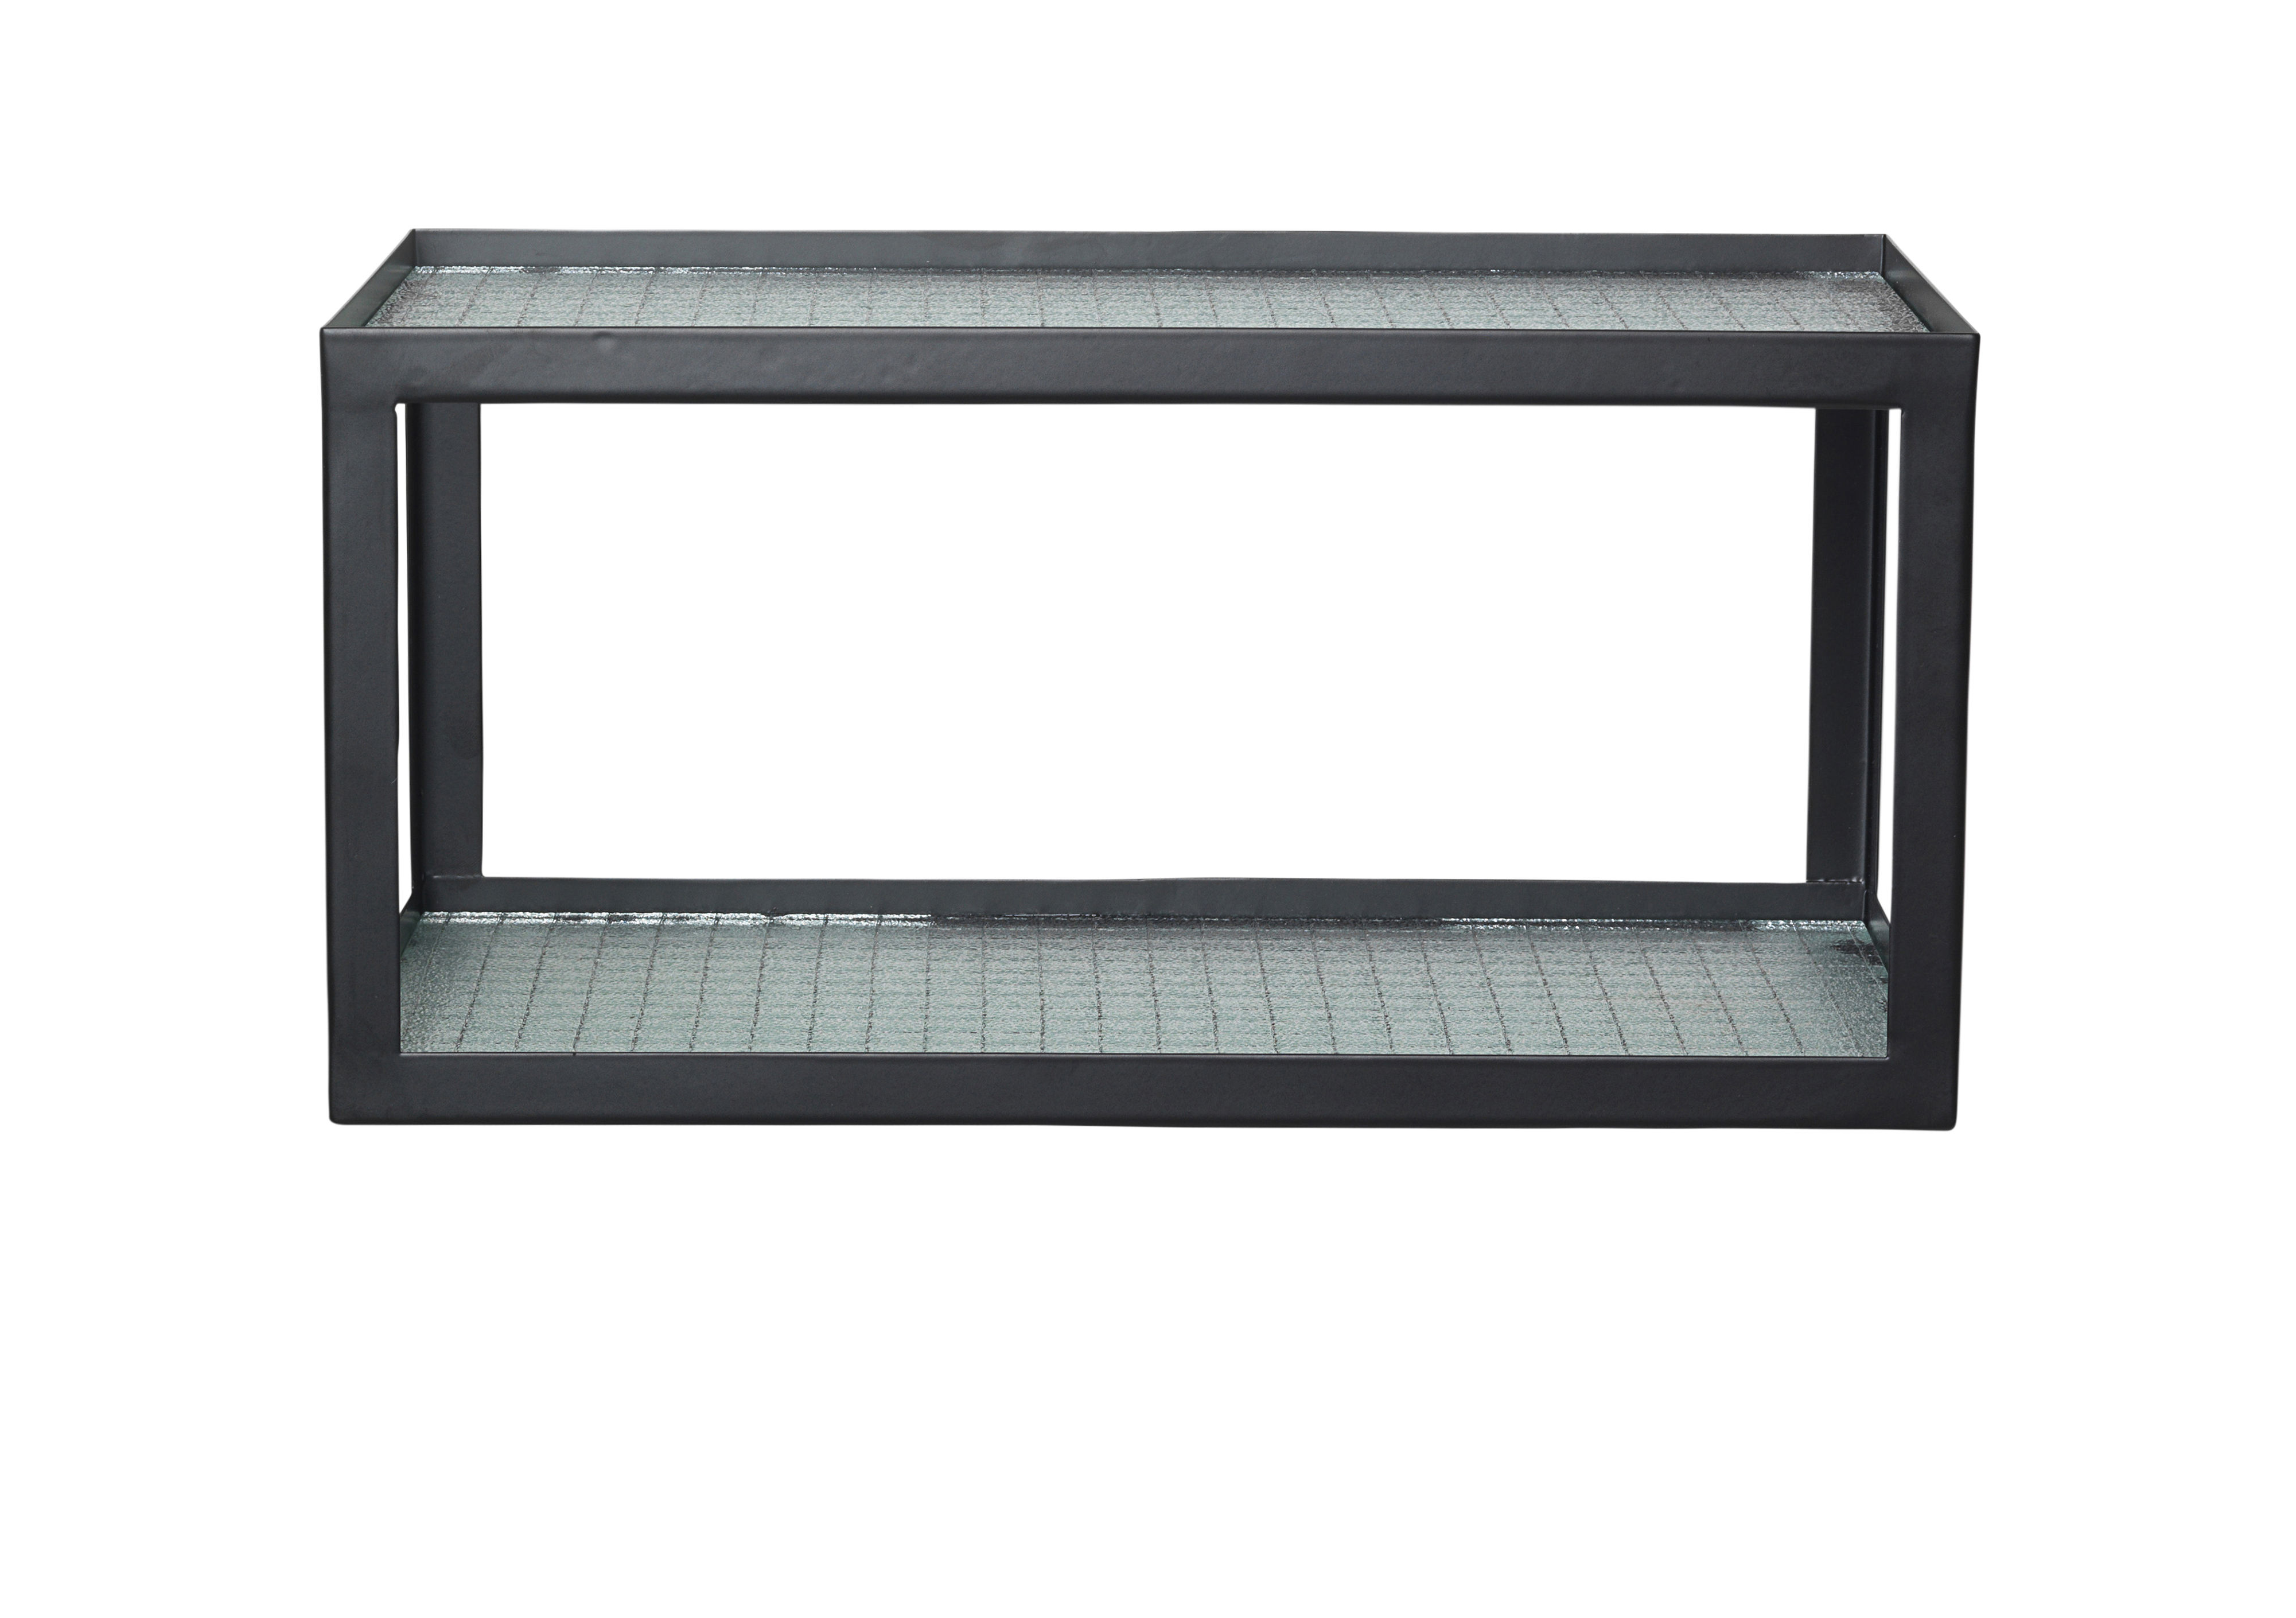 Furniture - Bookcases & Bookshelves - Haze Shelf - / L 35 cm - Reinforced glass & metal by Ferm Living - Black - Lacquered metal, Reinforced glass